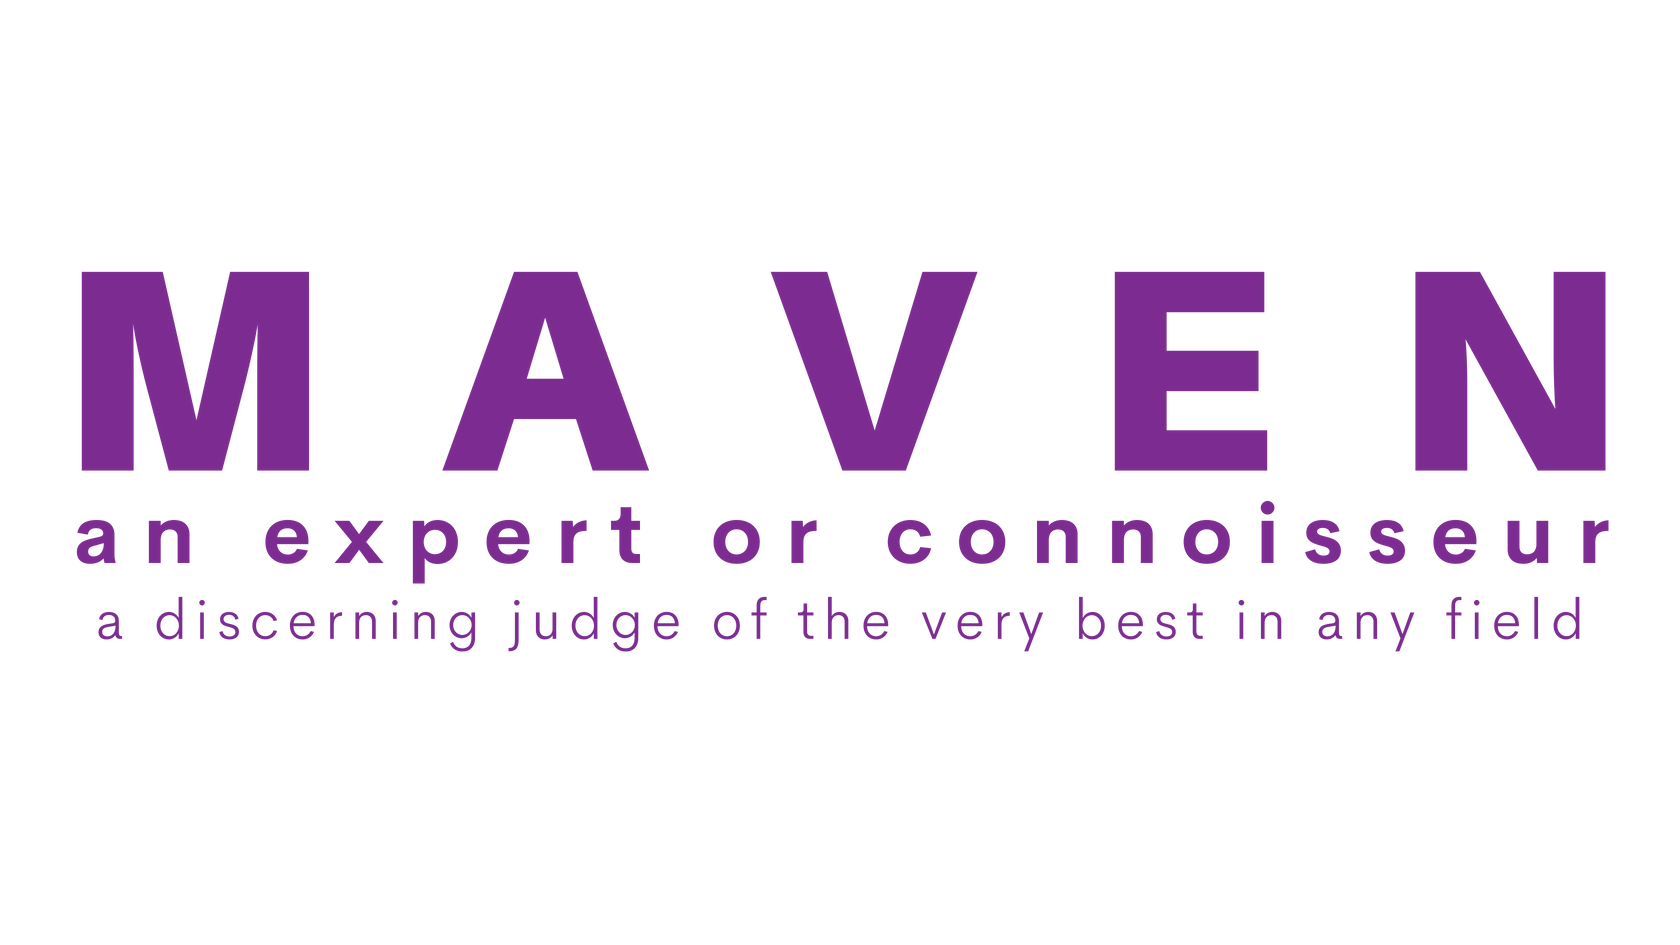 MAVEN definition.png